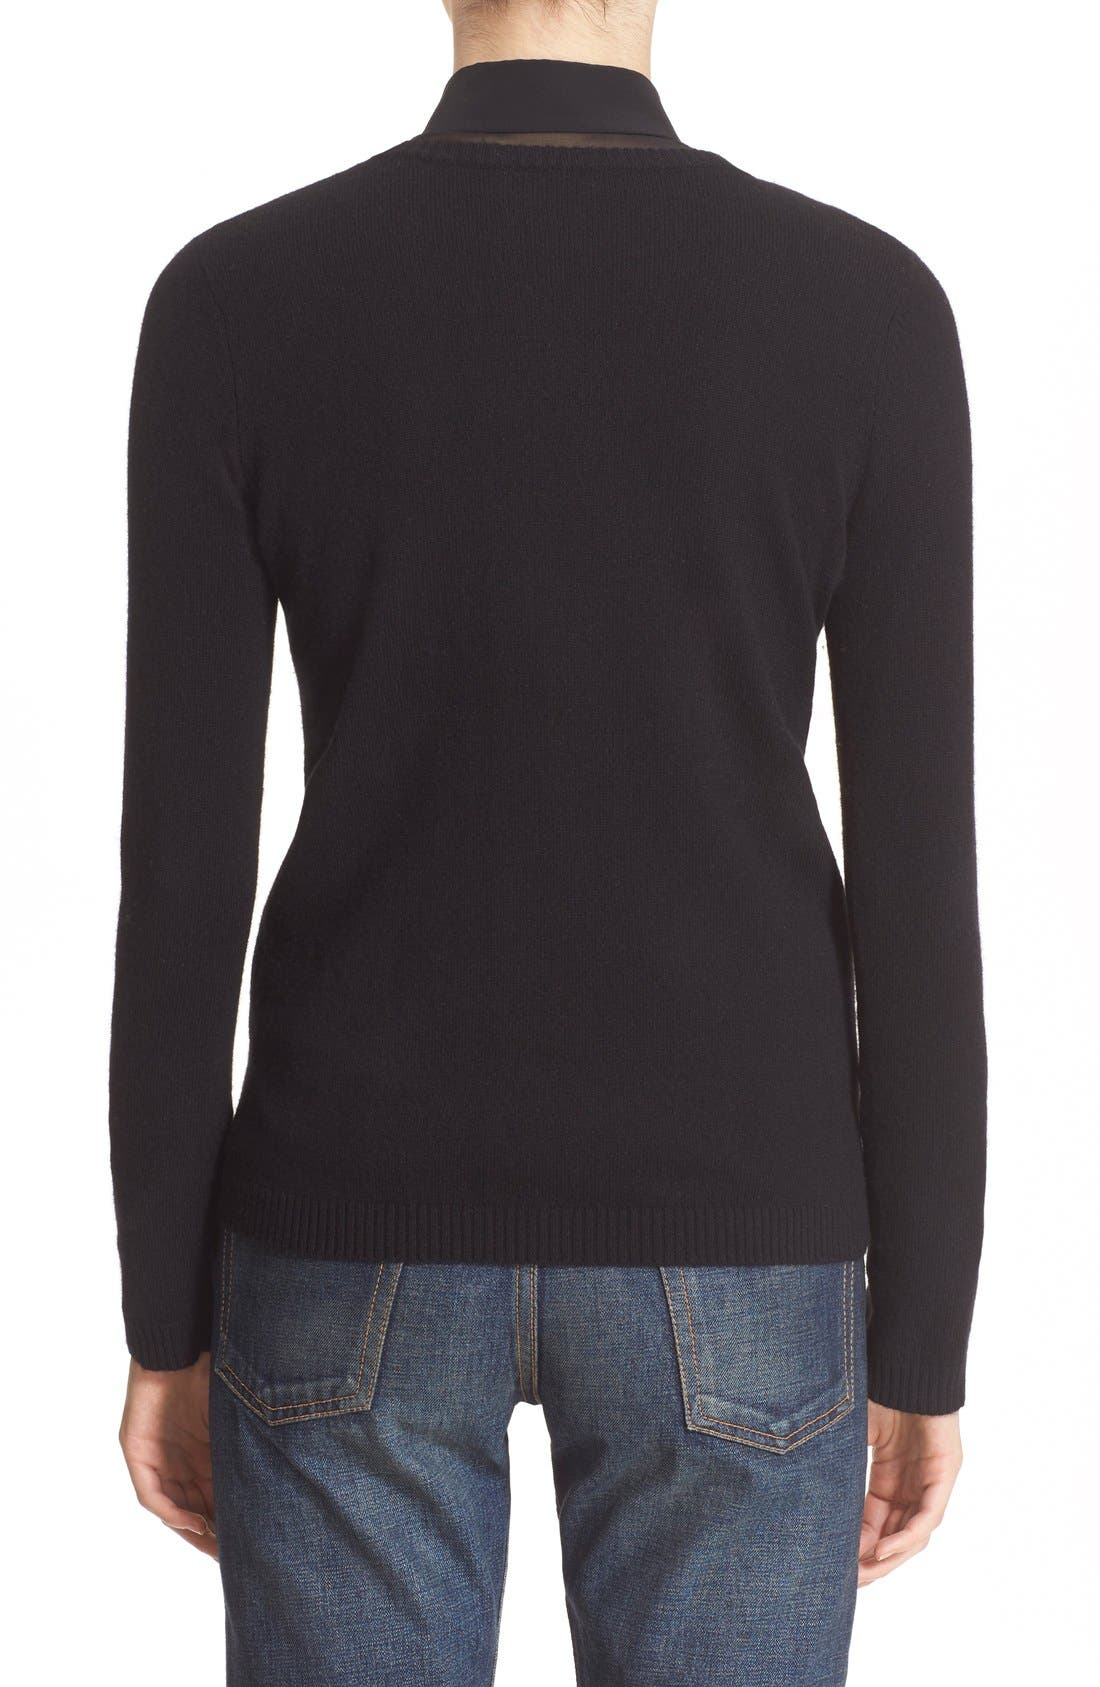 '1970' Wool Sweater,                             Alternate thumbnail 2, color,                             Black